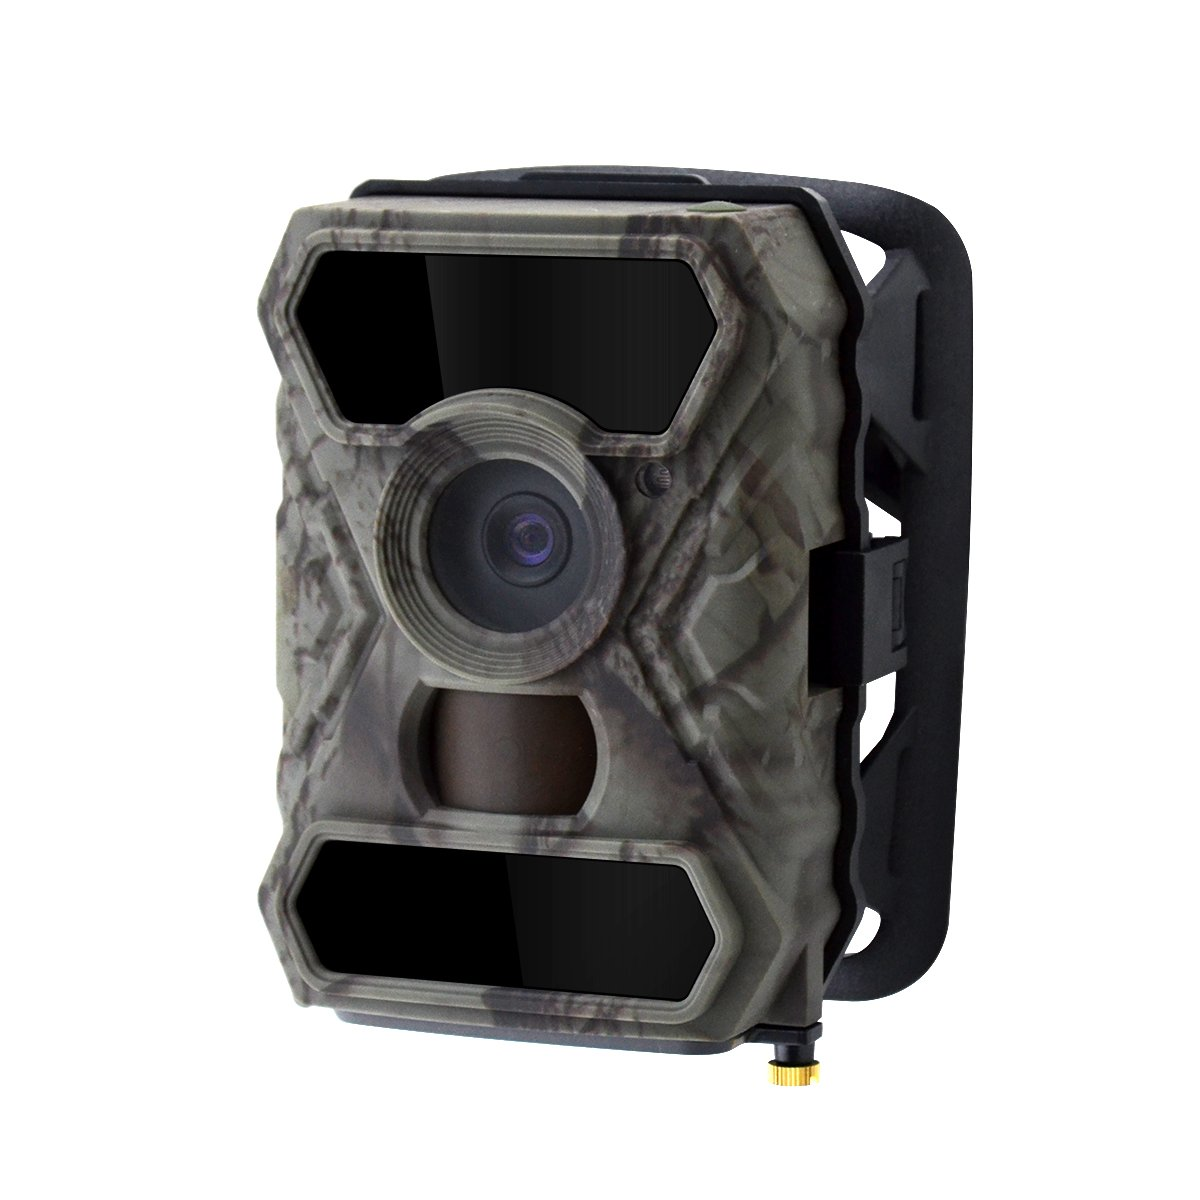 Trail Game Hunting Camera, WingHome 0.4S Trigger Speed 12MP 1080P HD 100° Wide Angle Lens No Glow Infrared Night Vision IP54 Waterproof, for Wildlife Monitoring and Home Security